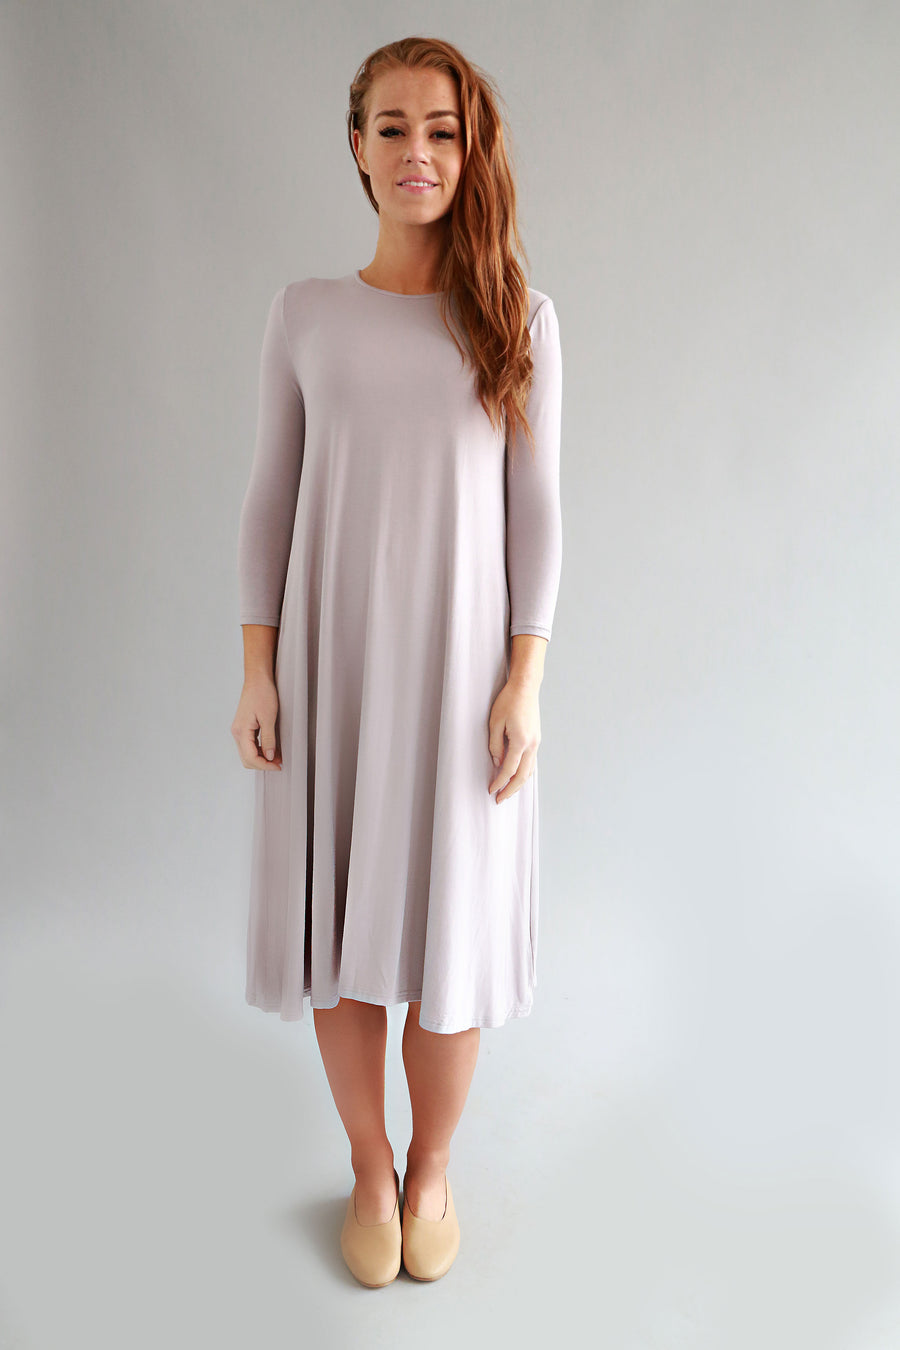 LILAC GREY BASIC DRESS - SOLIKA